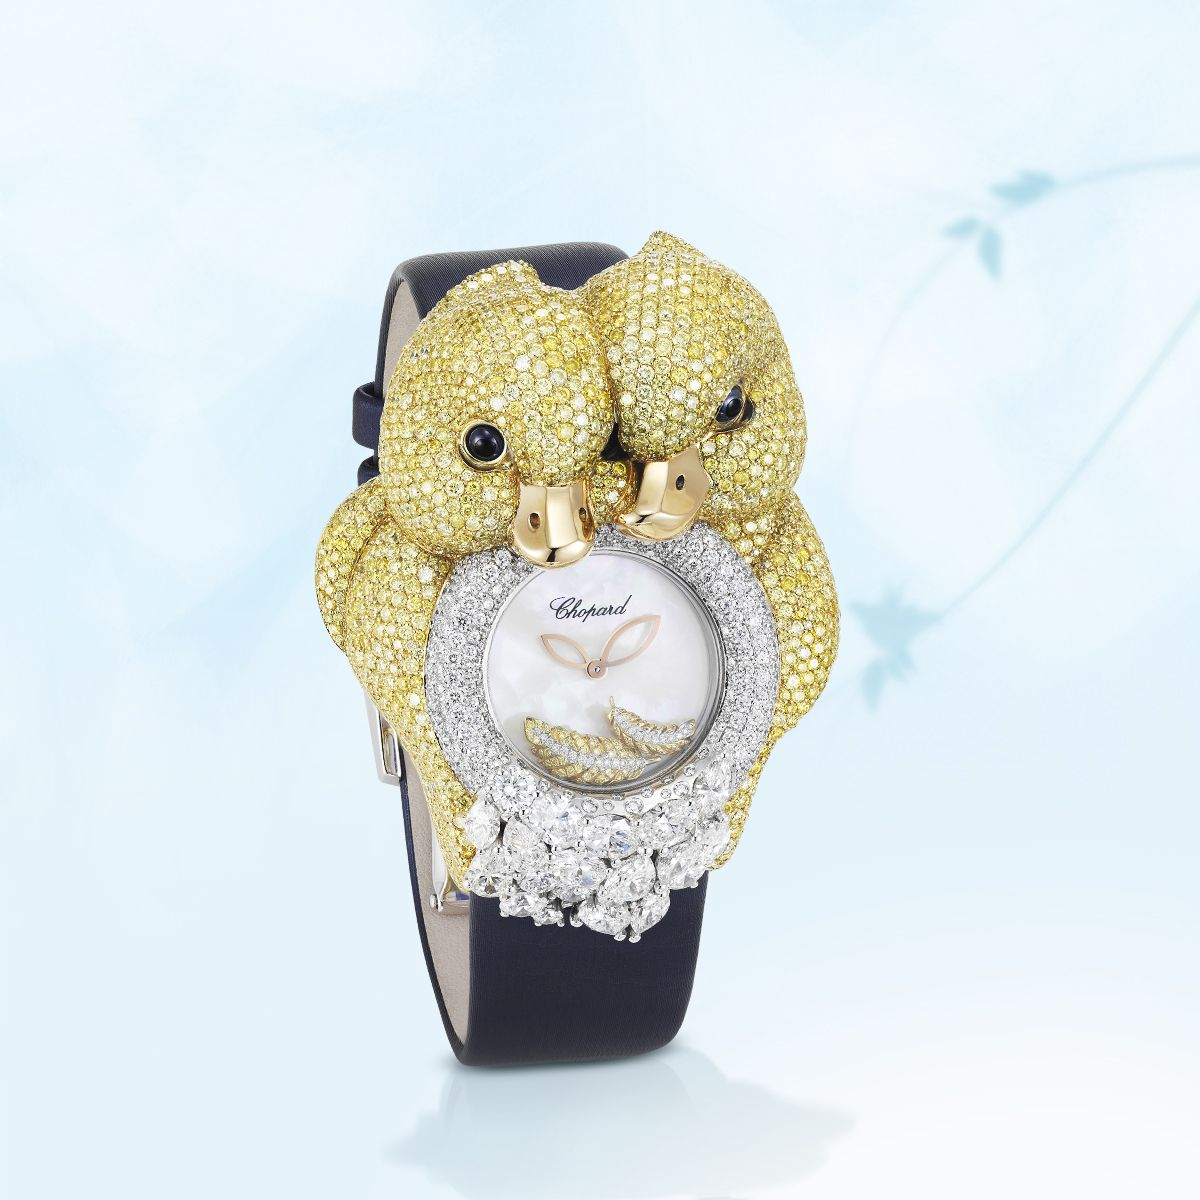 Caressed by a black silk bracelet, two yellow diamonds ducklings snuggle on the diamond-set case of this sweet watch.